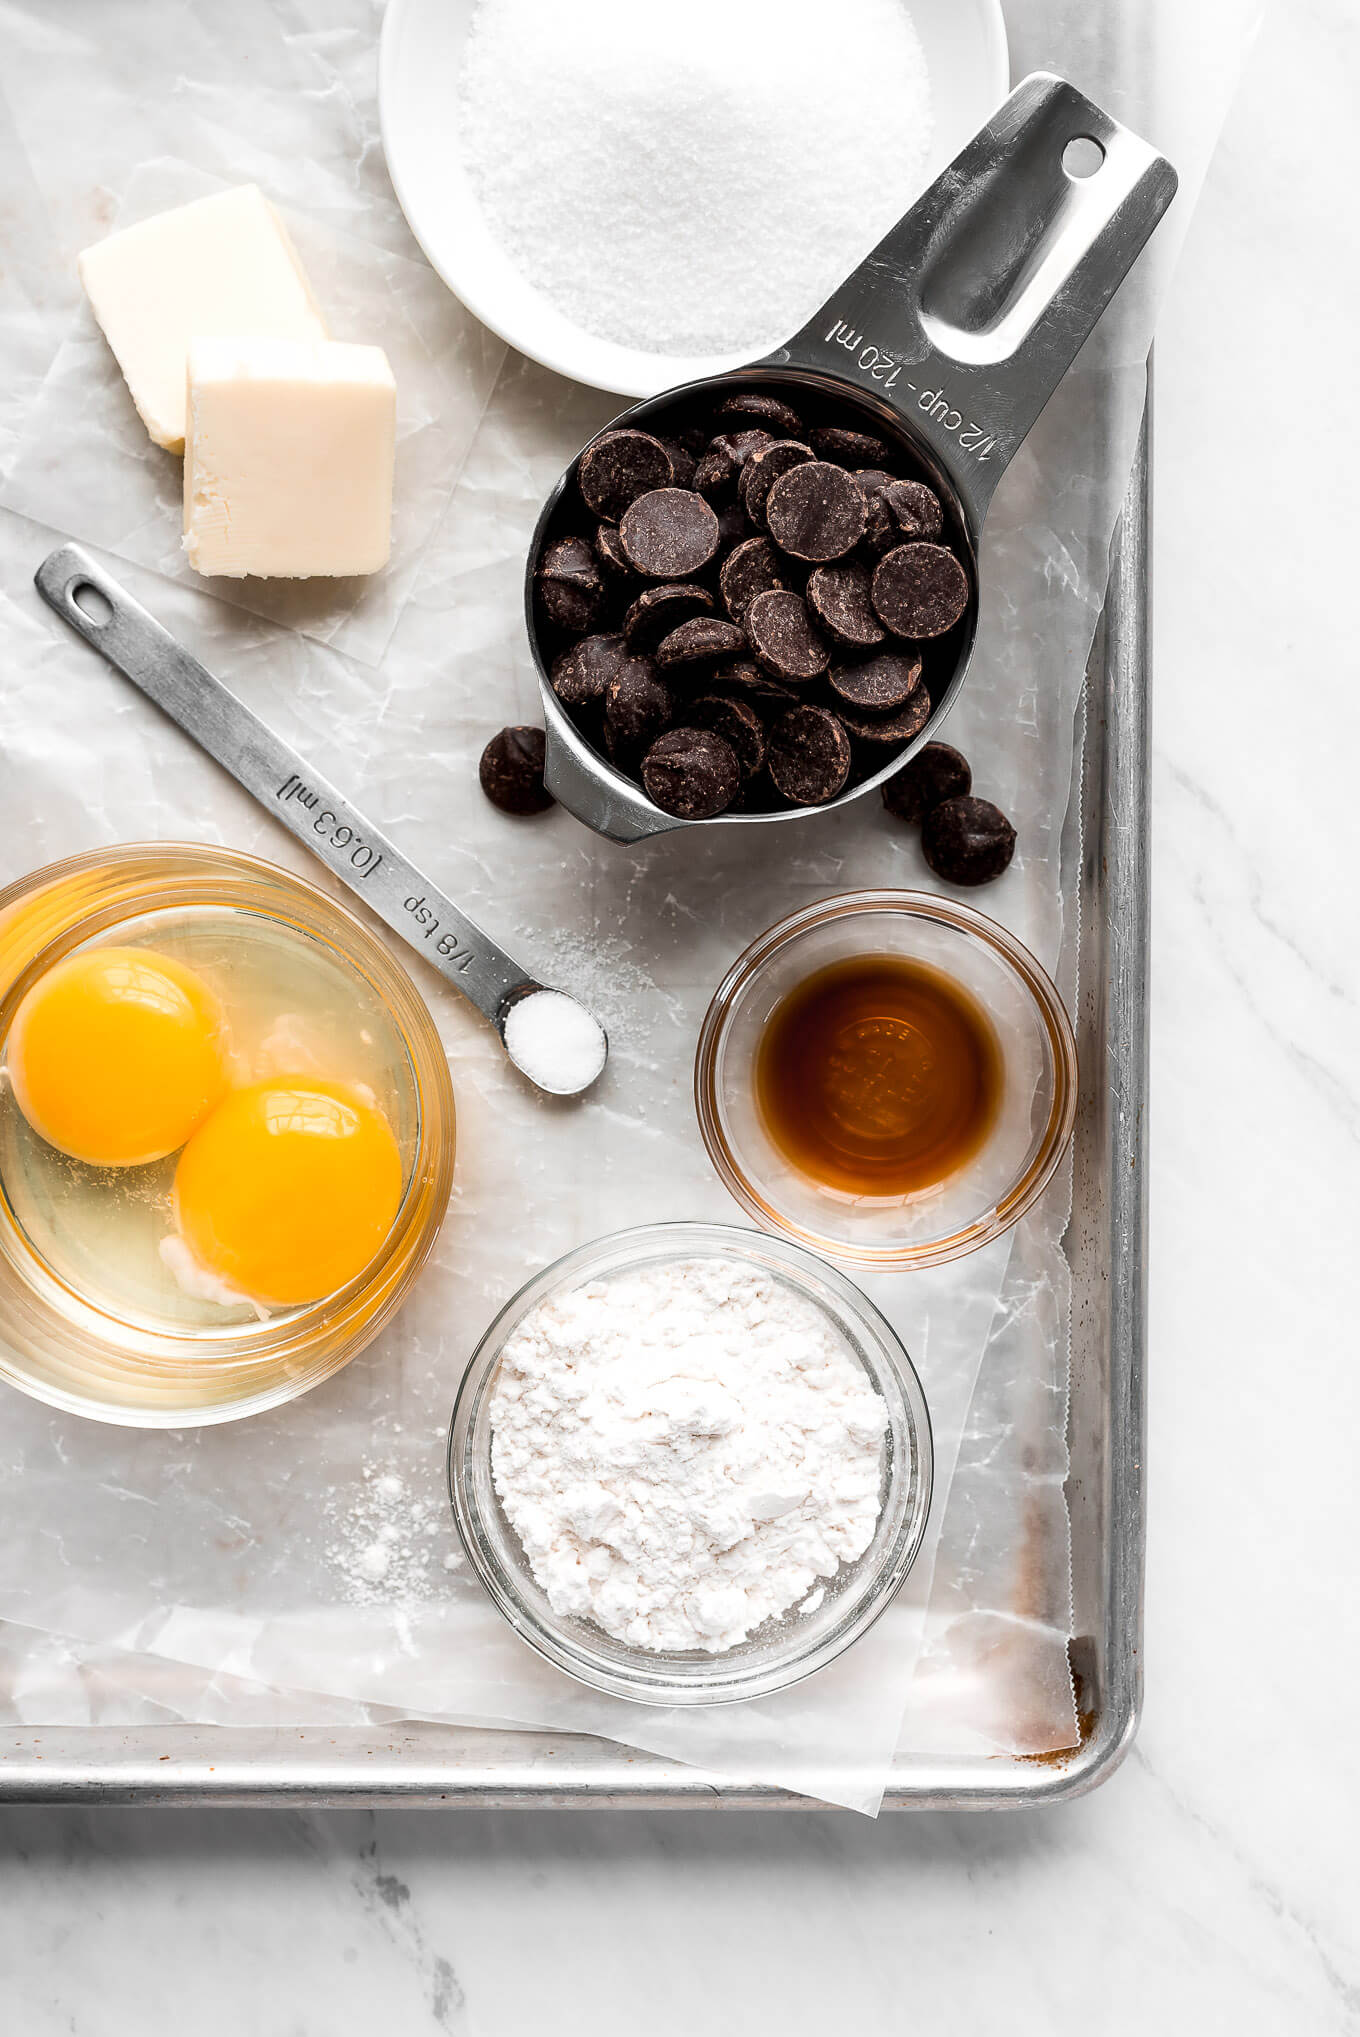 A baking sheet with ingredients on it- chocolate chips, sugar, butter, vanilla extract, salt, eggs, and flour.